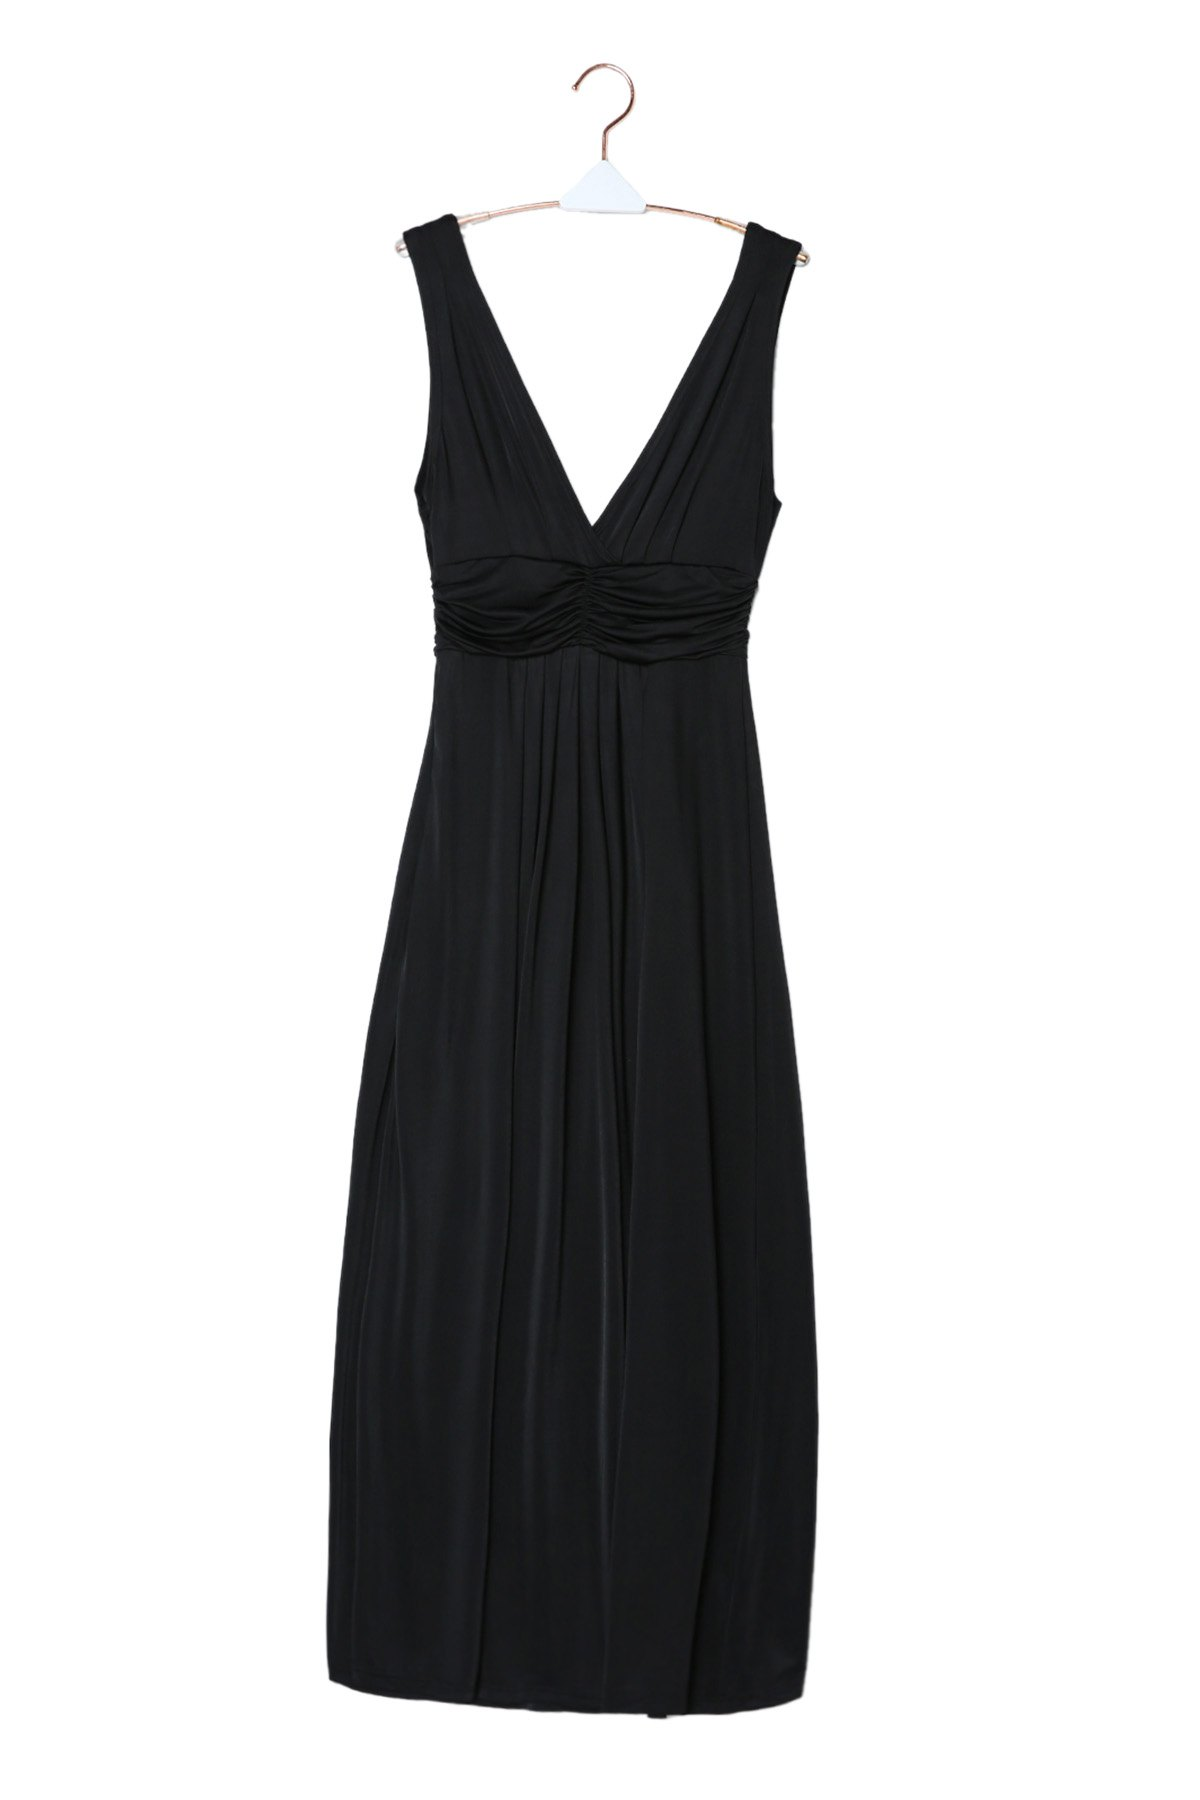 Sexy Plunging Neck Sleeveless Pure Color Womens Maxi Dress